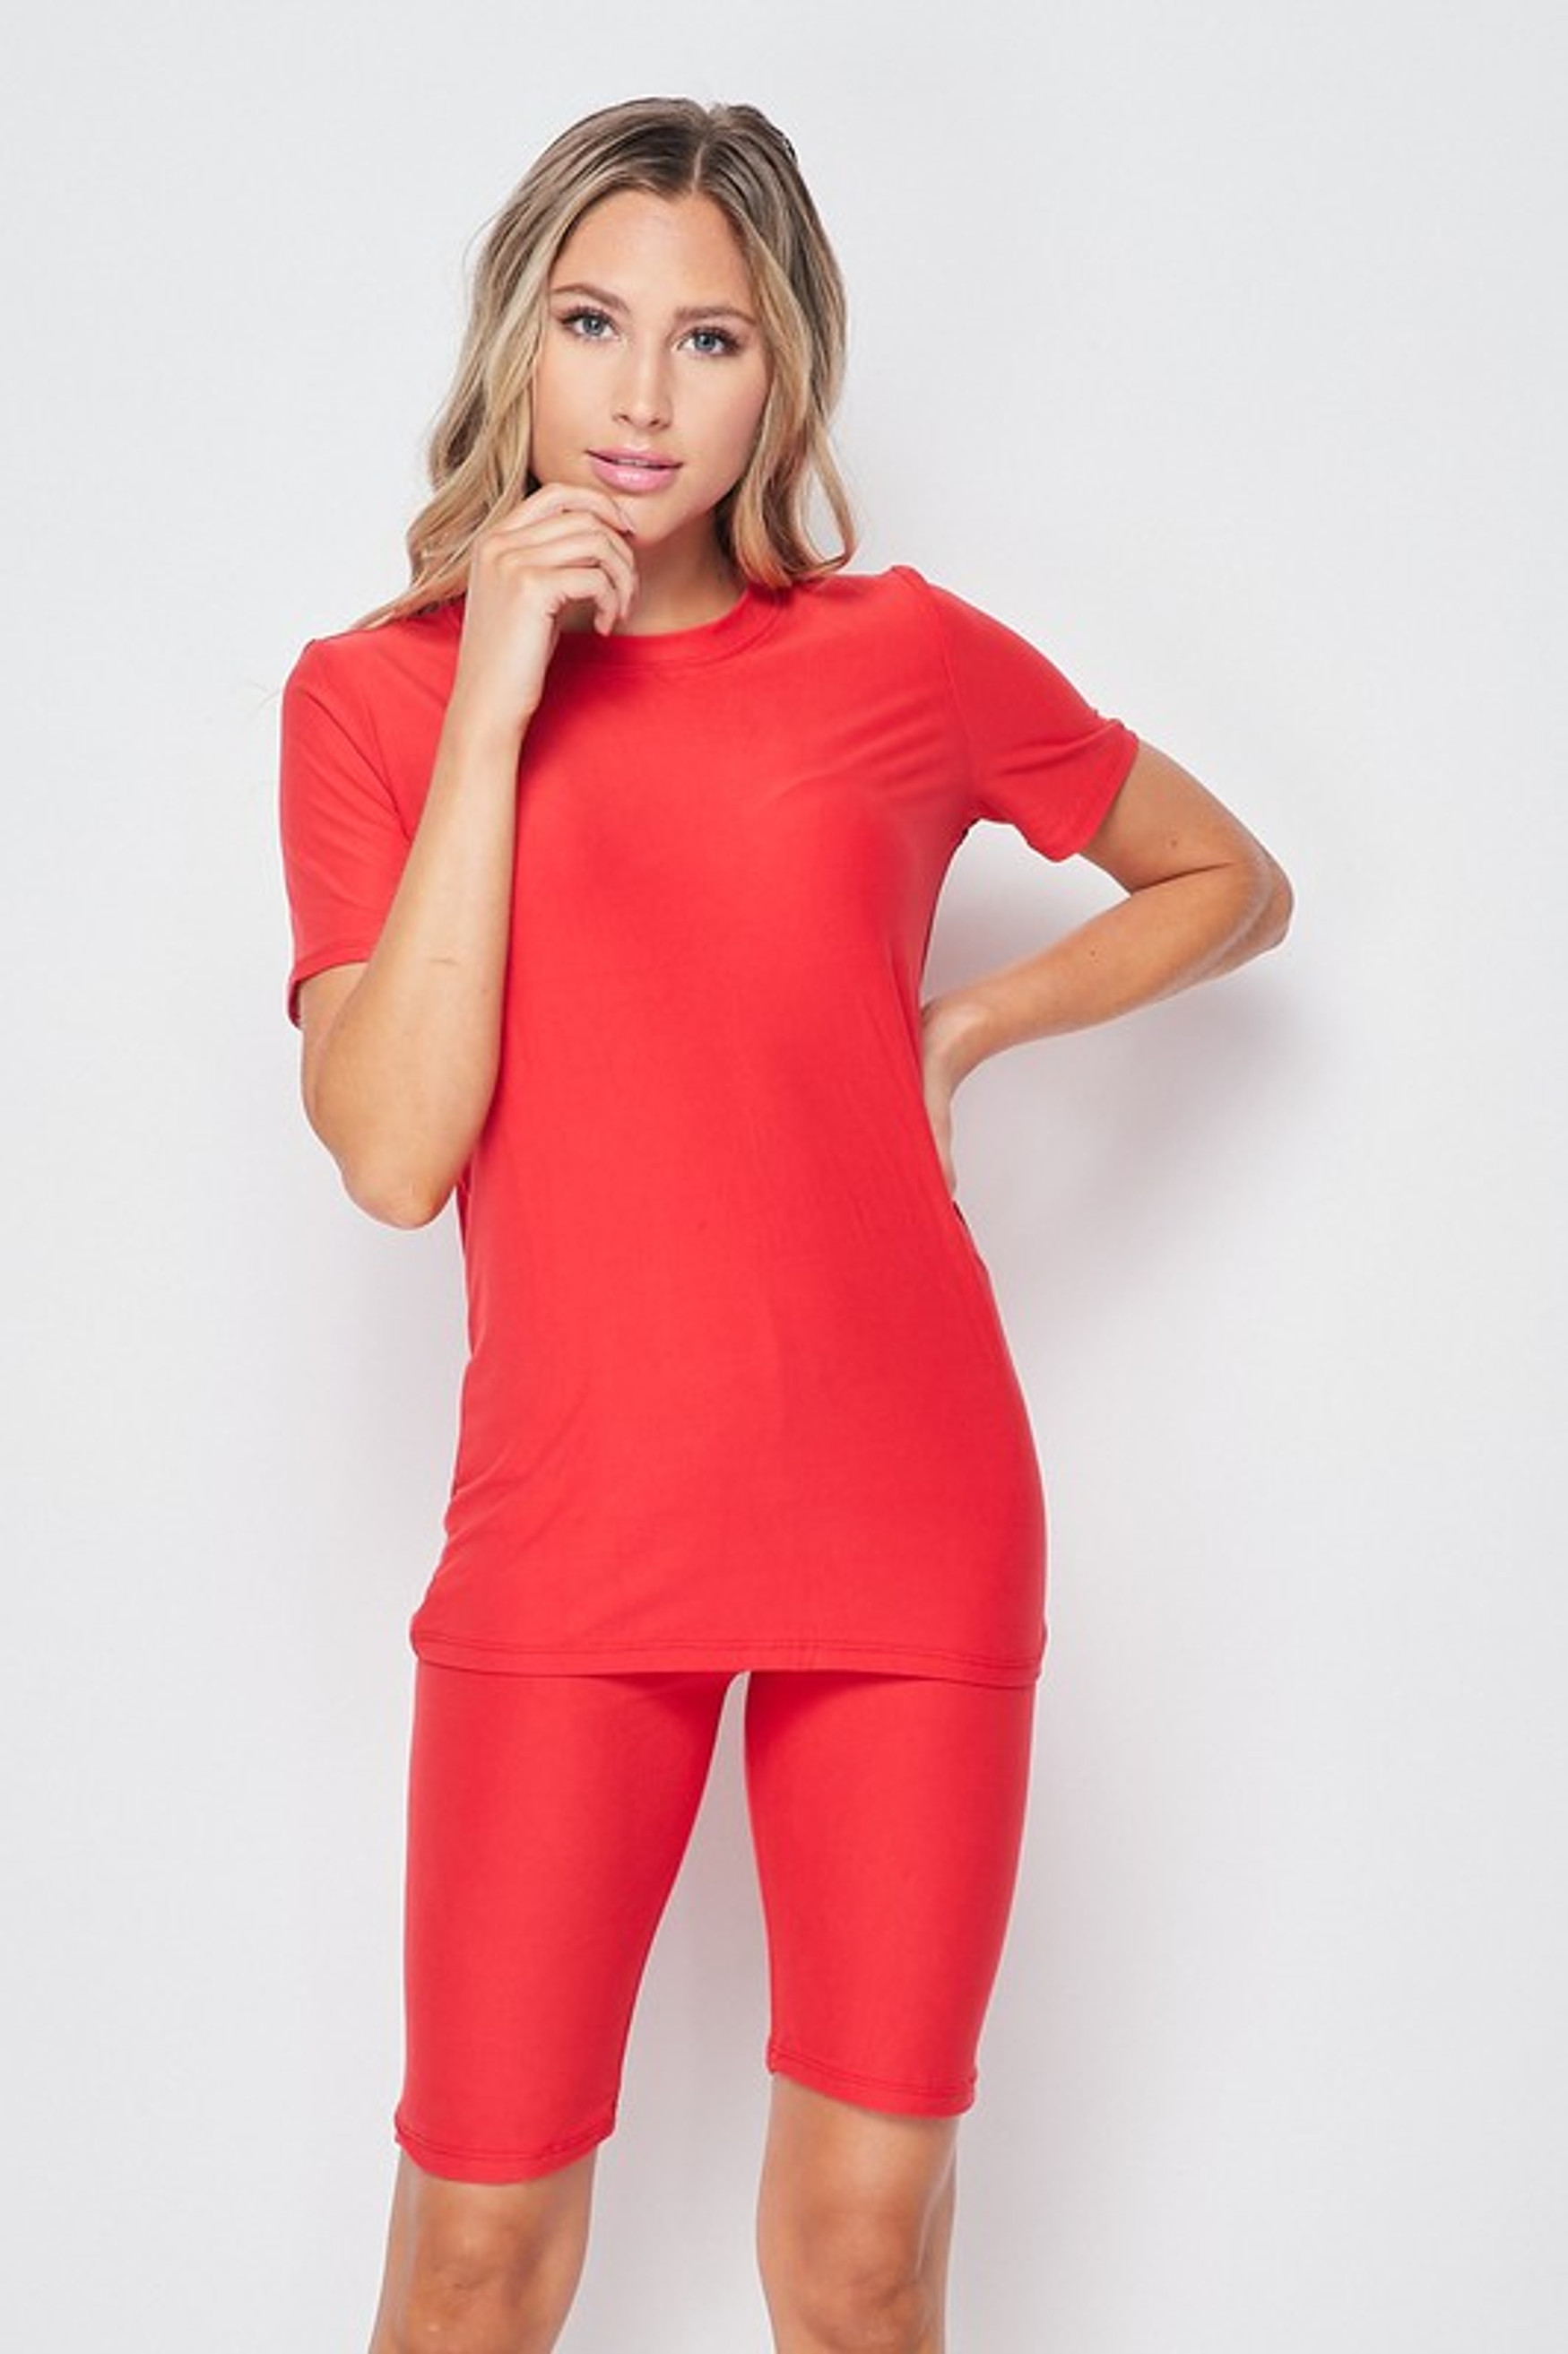 Red Buttery Soft Basic Solid Biker Shorts and T-Shirt Set